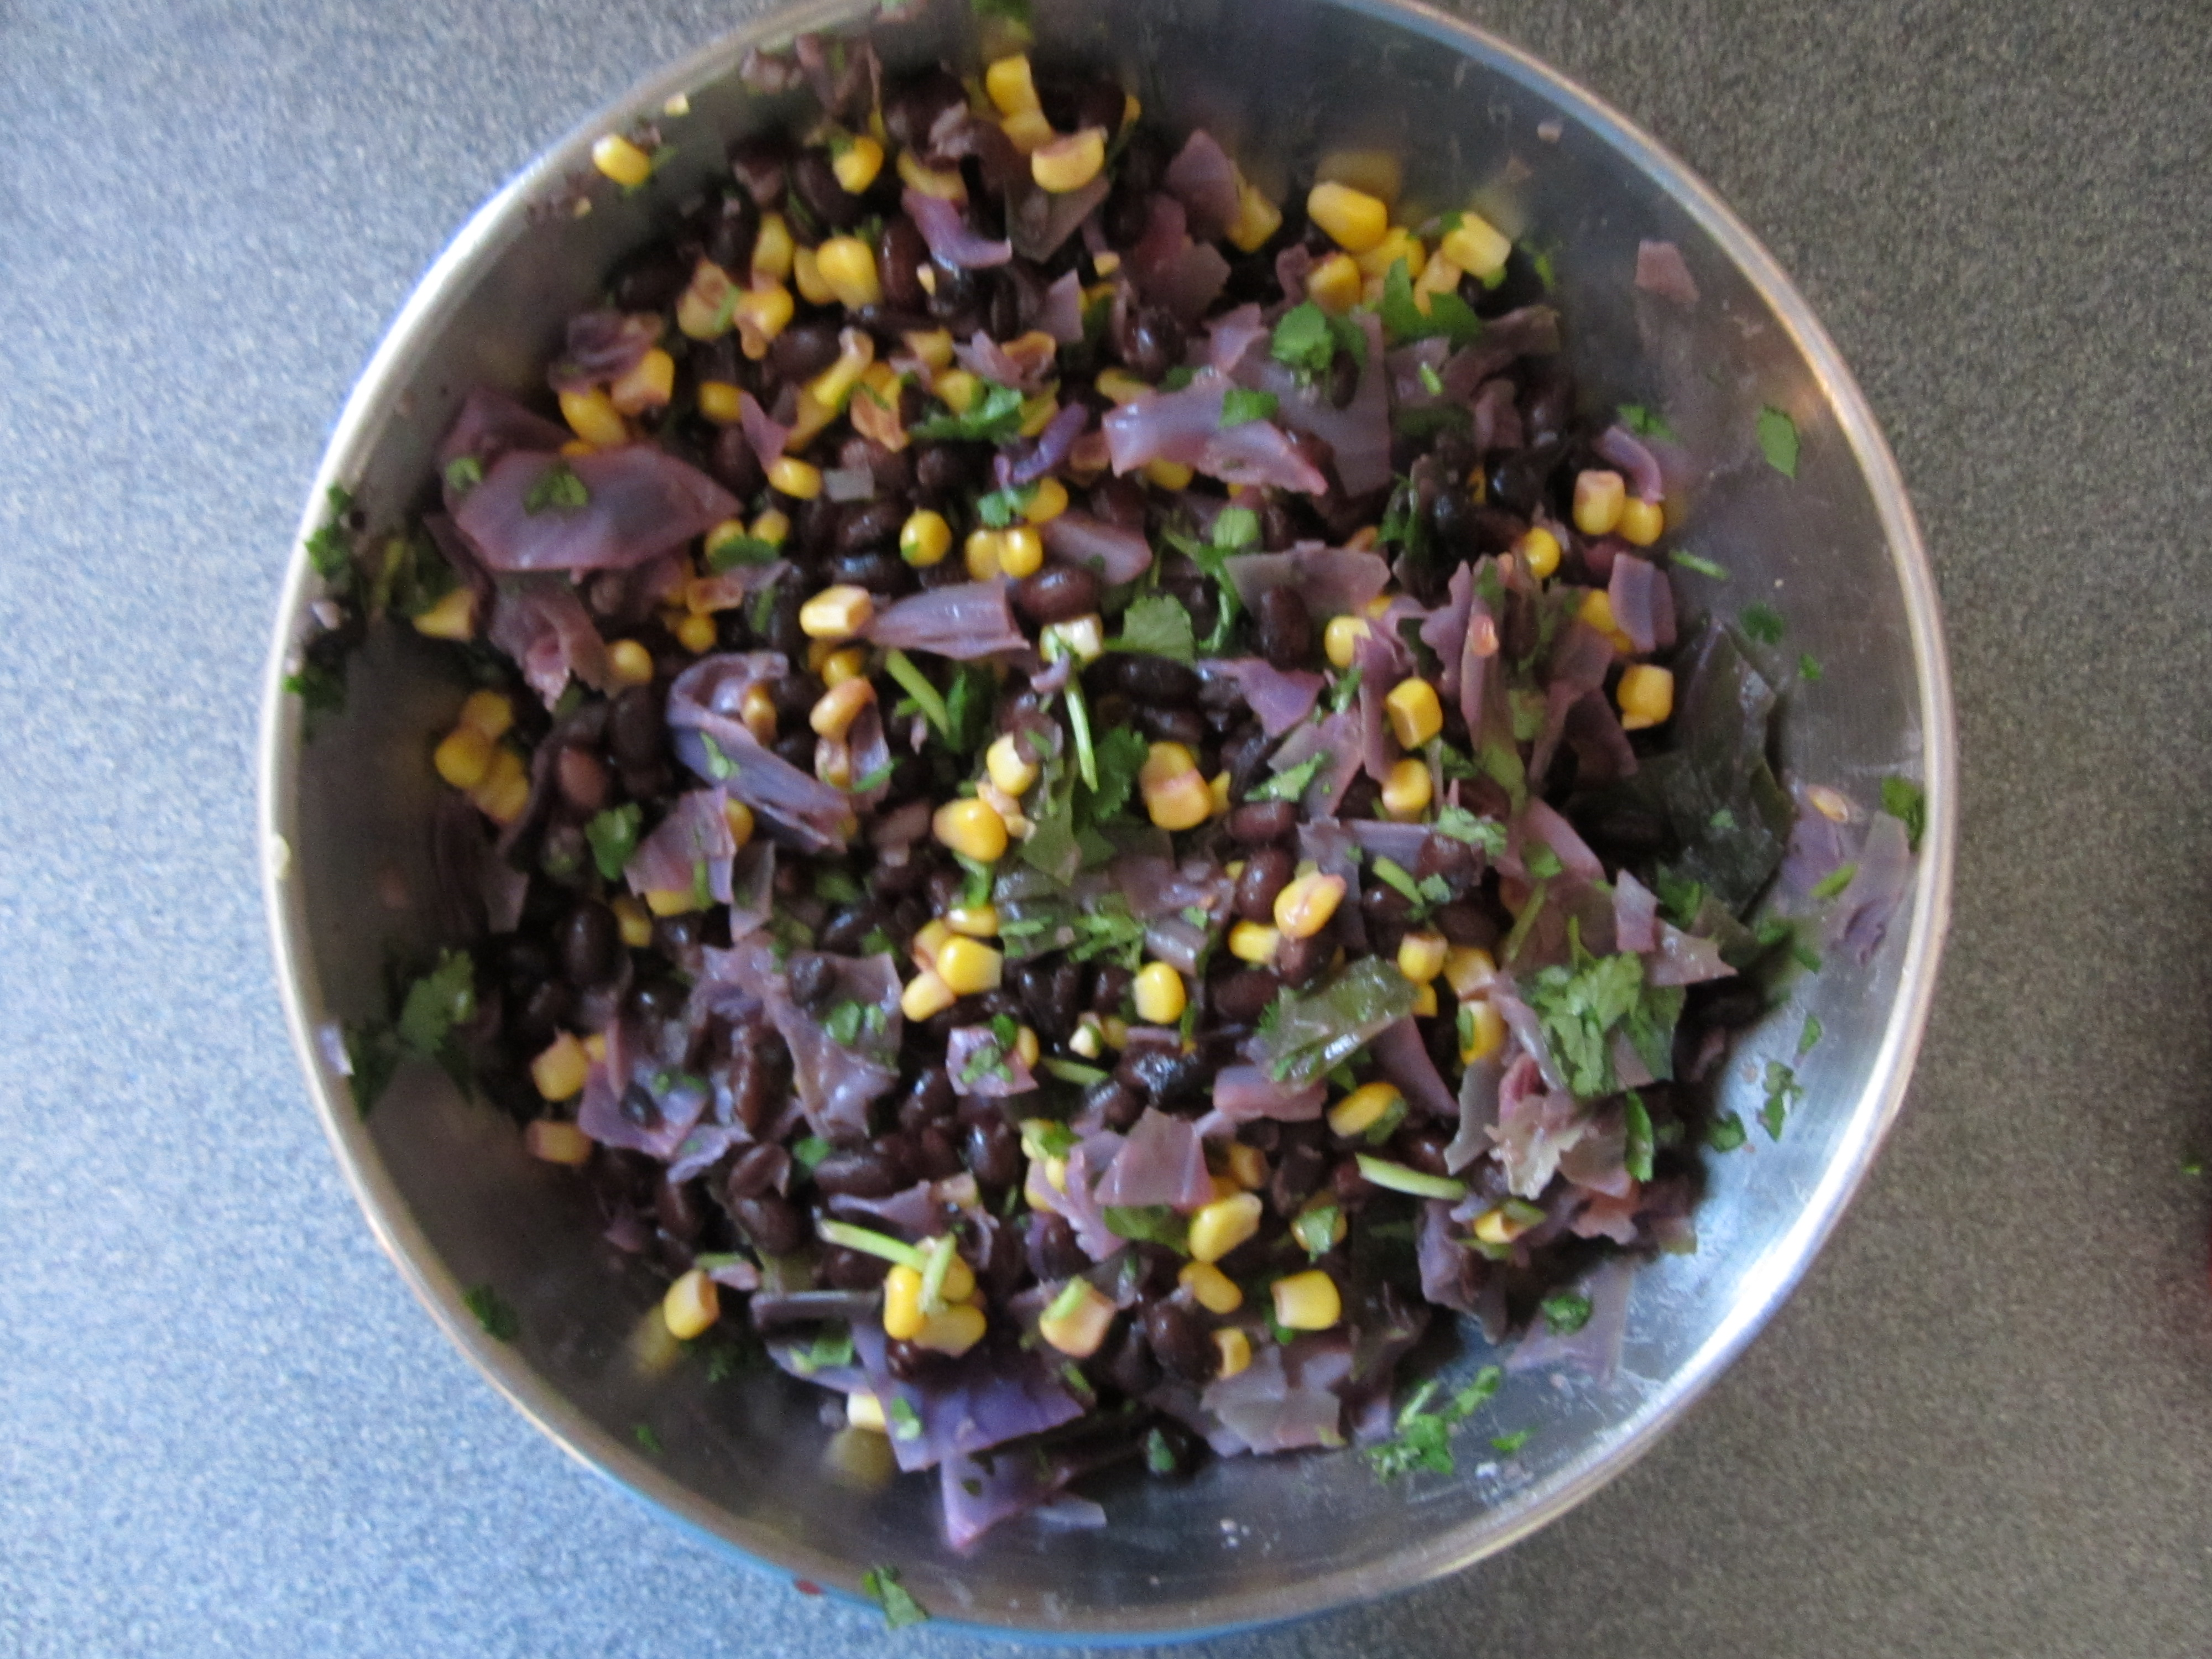 Southwestern black bean and red cabbage salad.